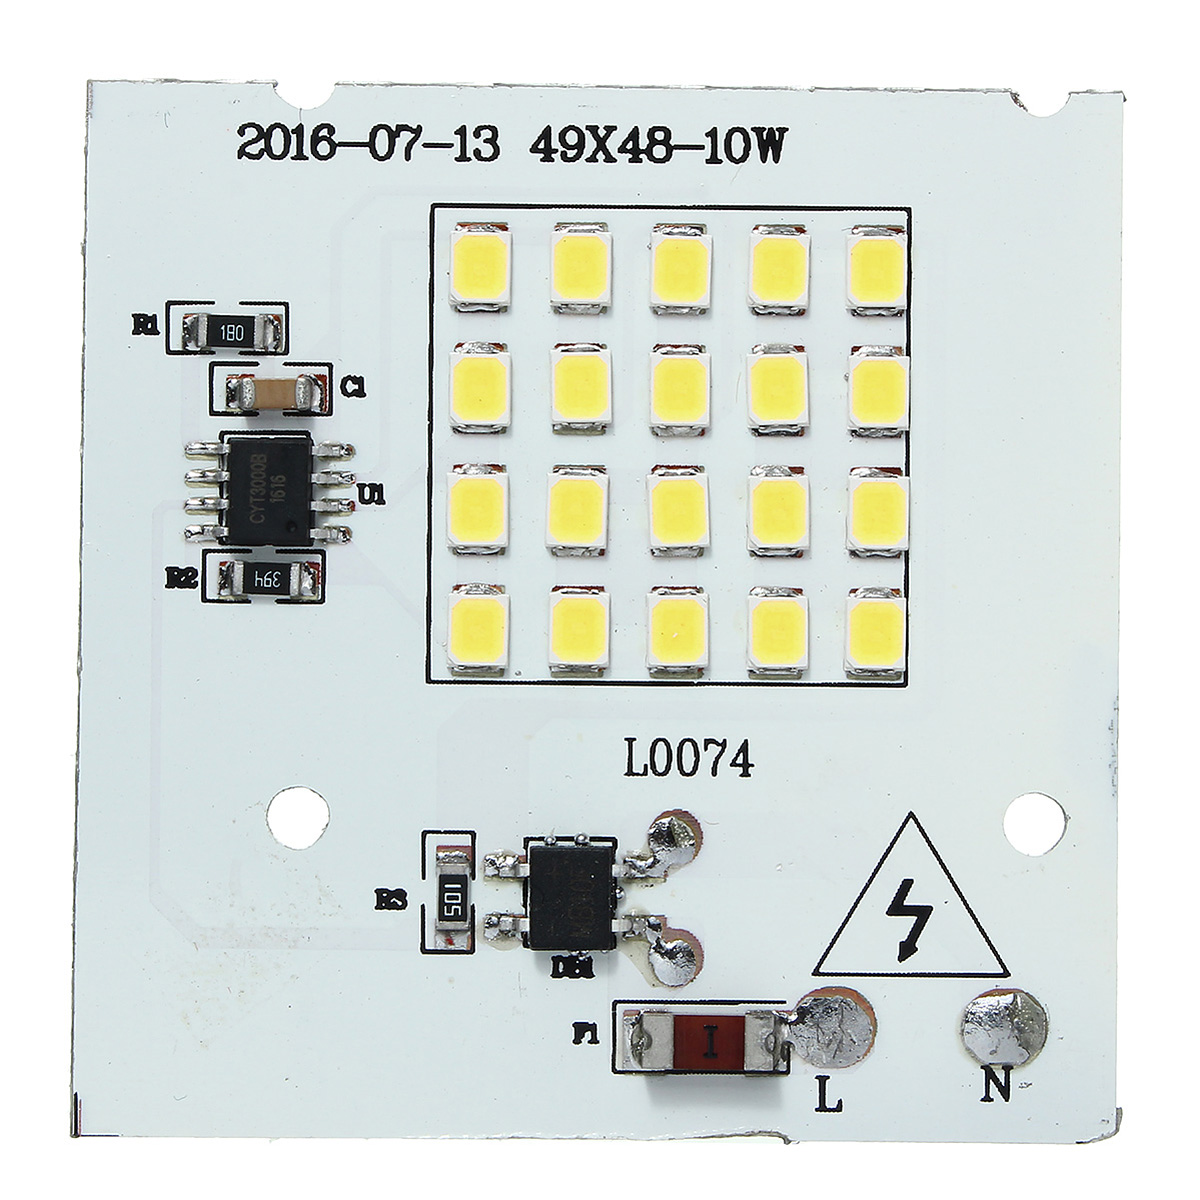 10W SMD2835 Outdooors Smart IC LED Bulbs COB Chip Bead Flood Light Lamp 220V